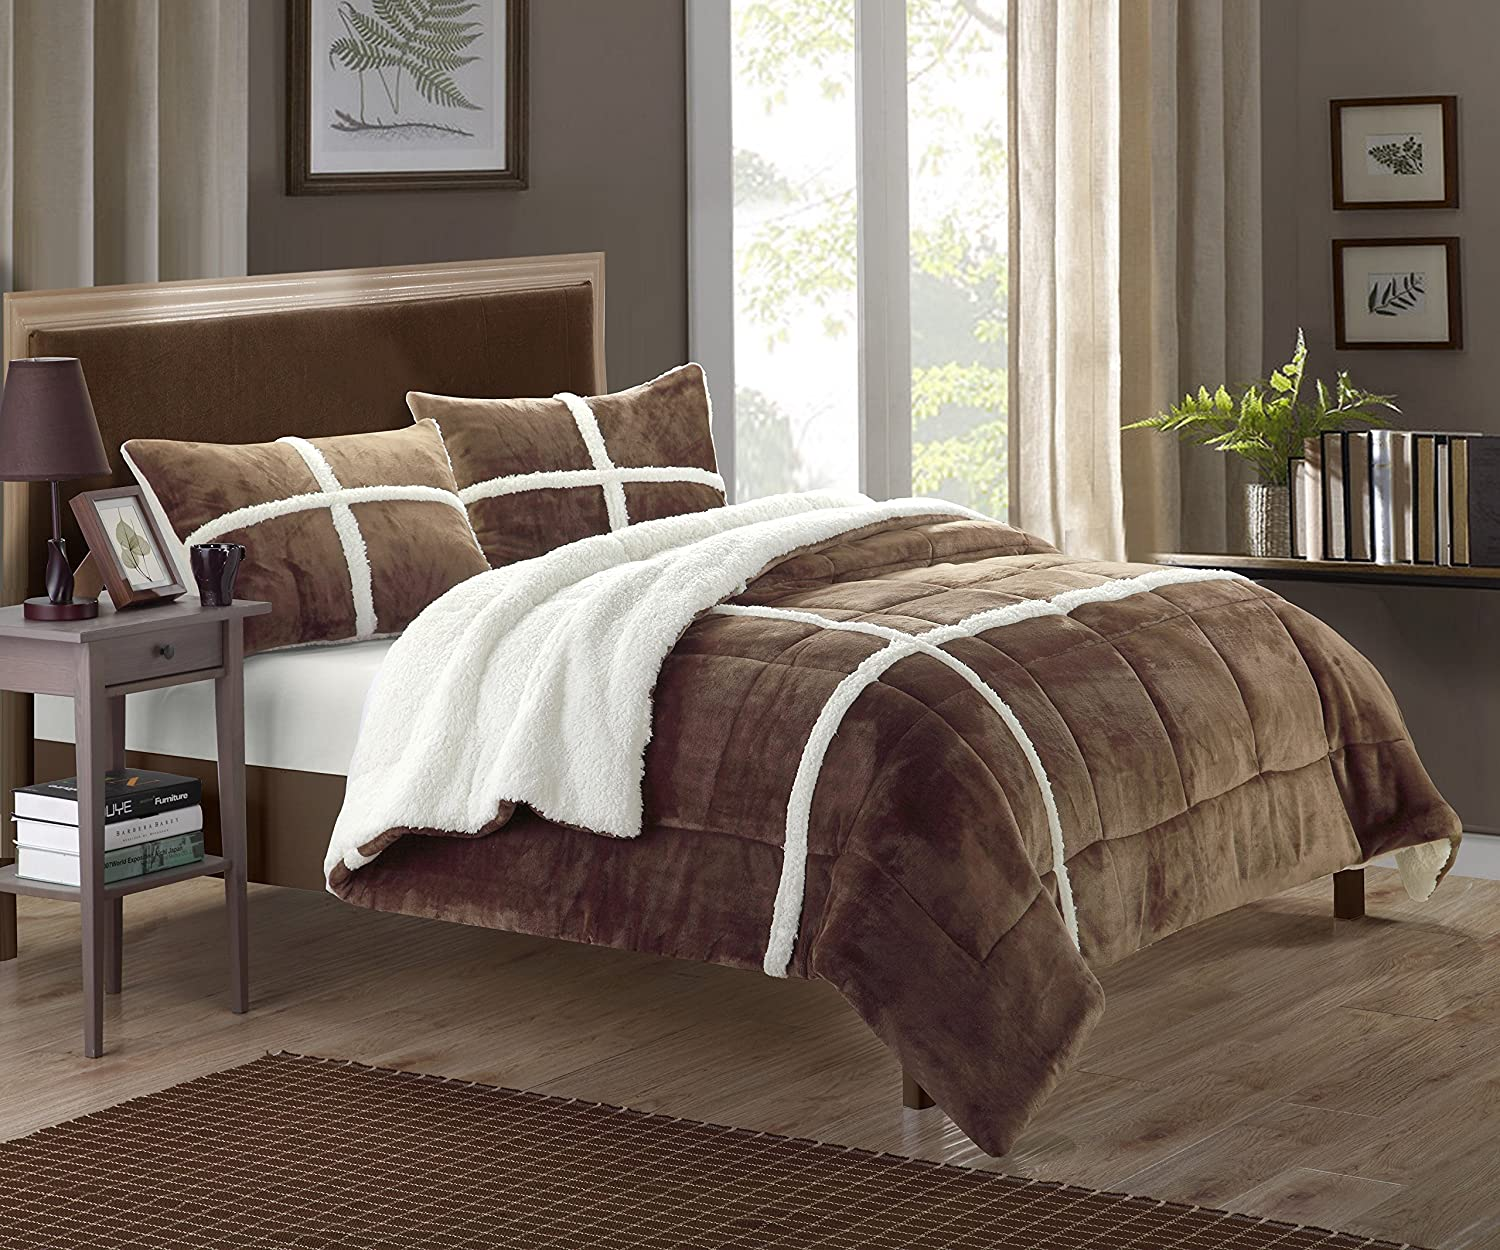 Chic Home 3-Piece Chloe Sherpa Lined Plush Microsuede Comforter Set, Queen, Brown